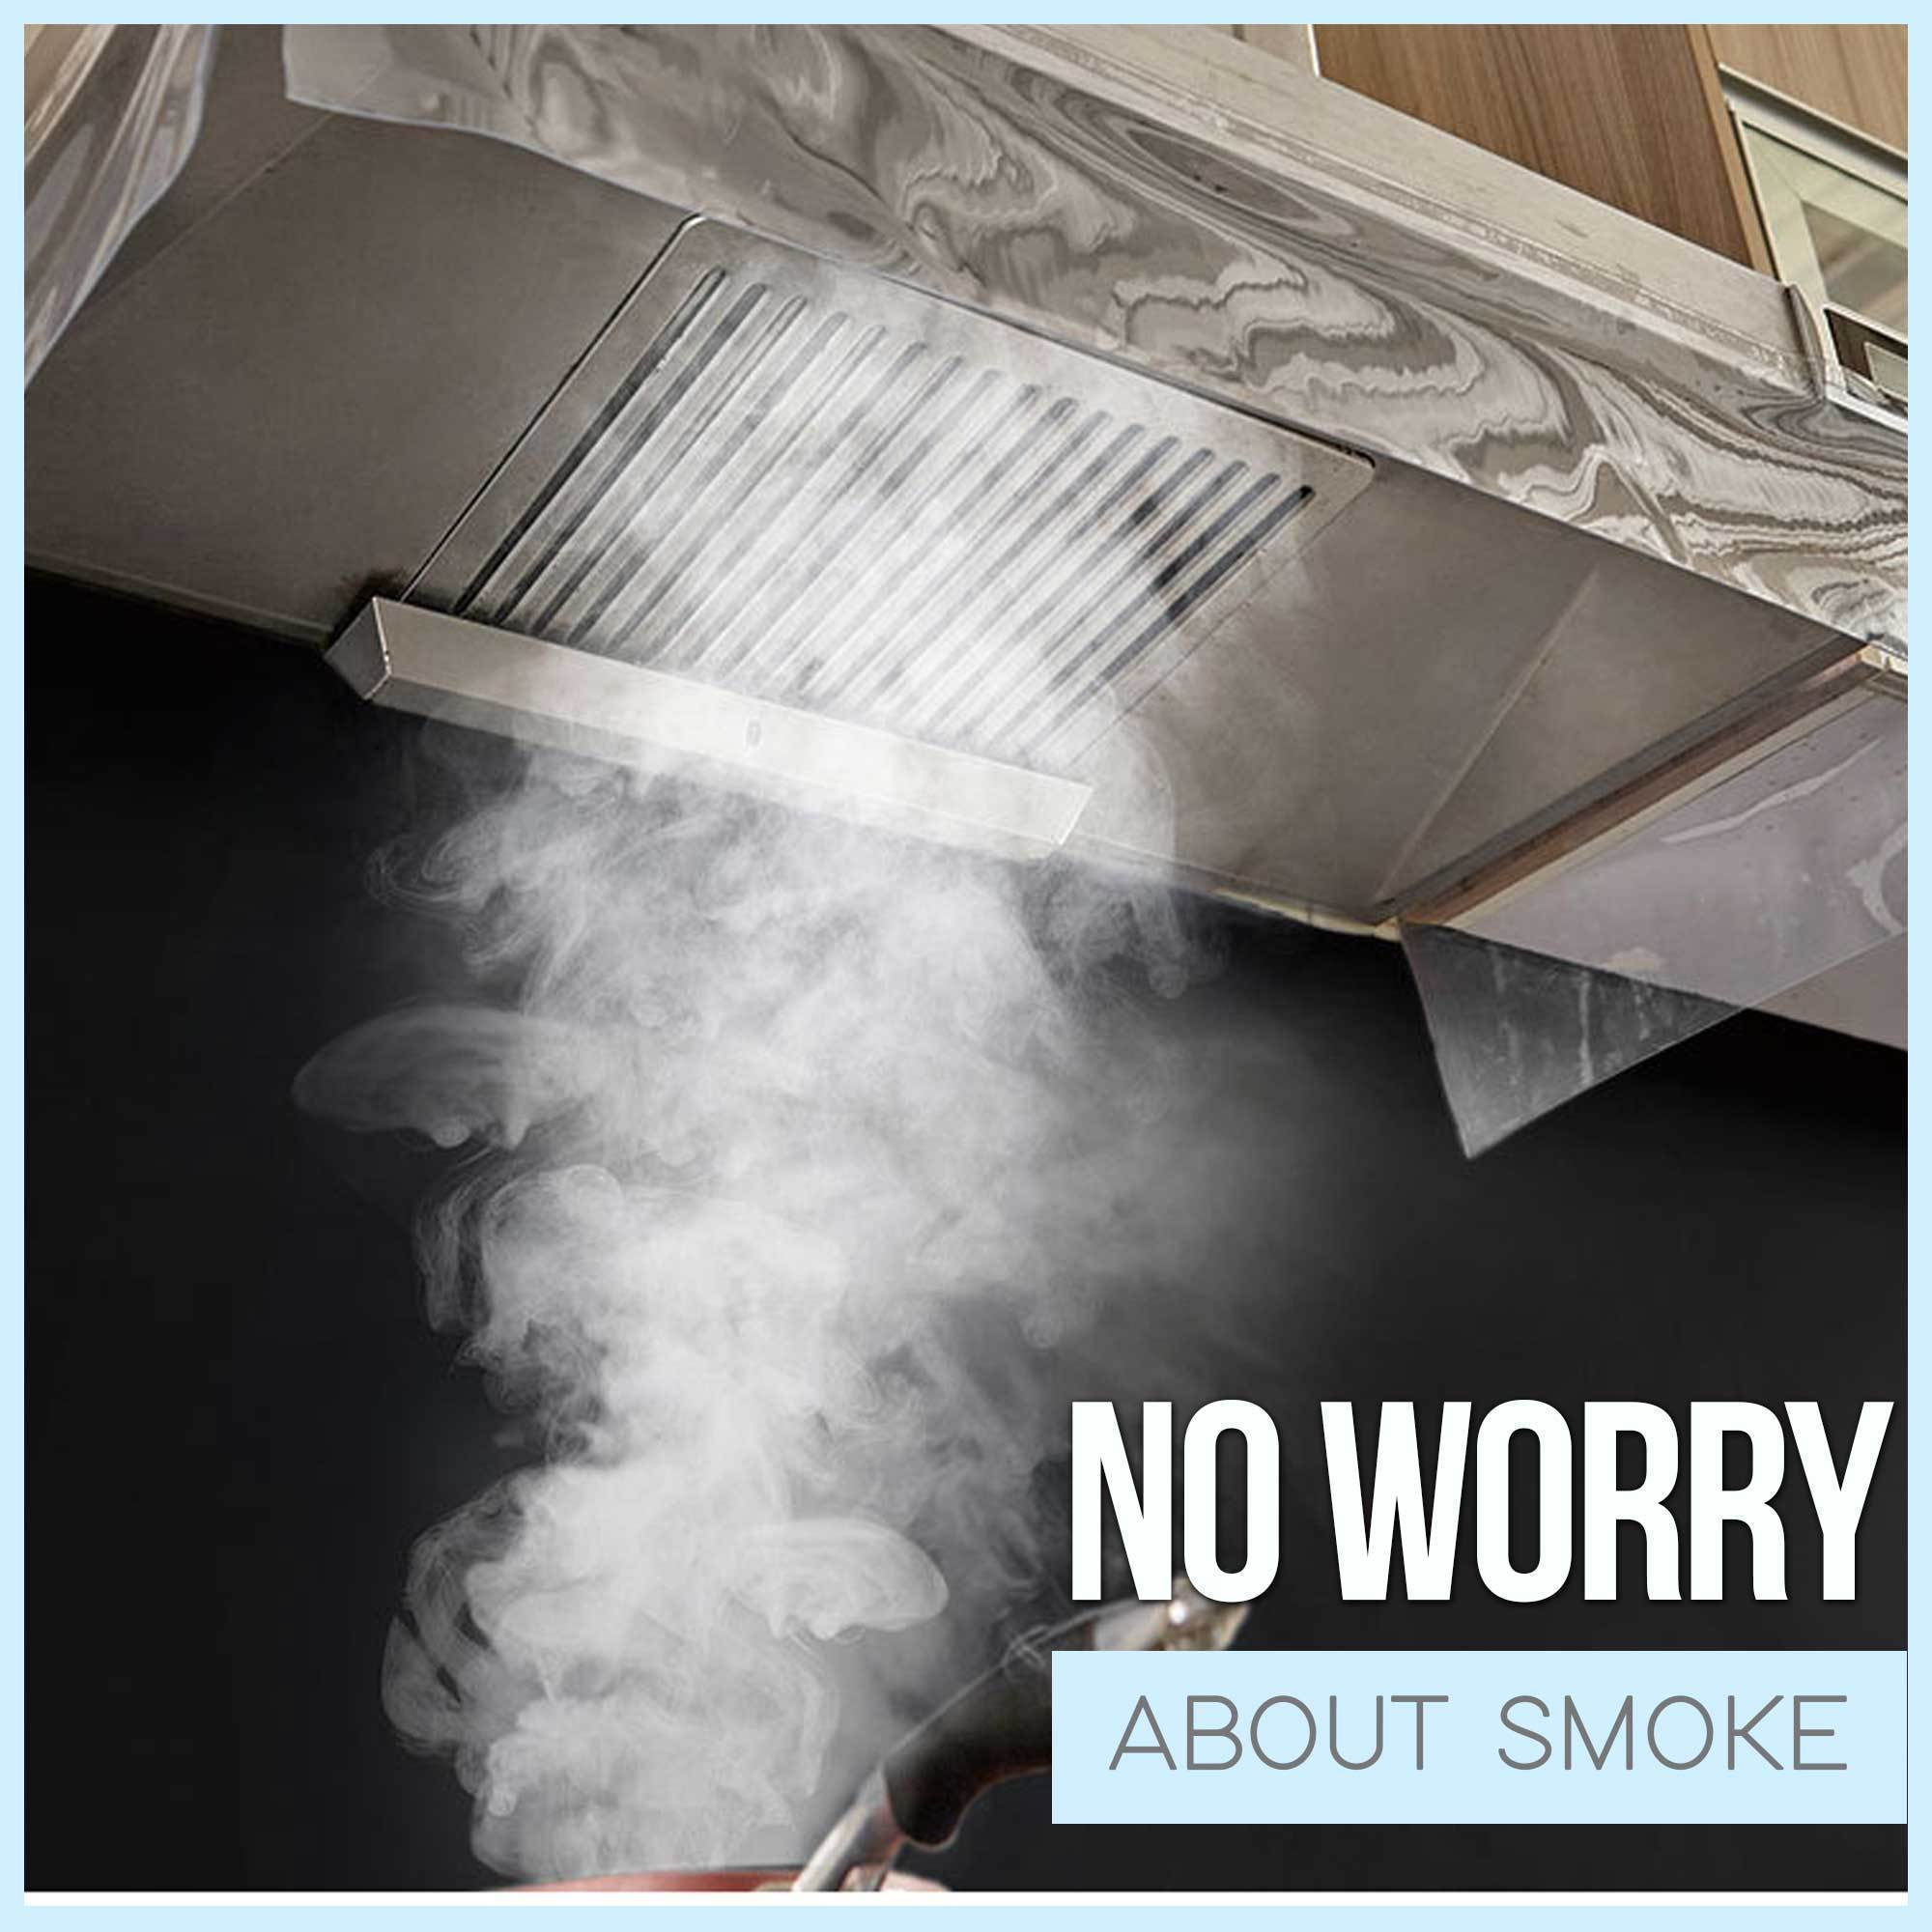 Range Hood Anti-Smoke Cover